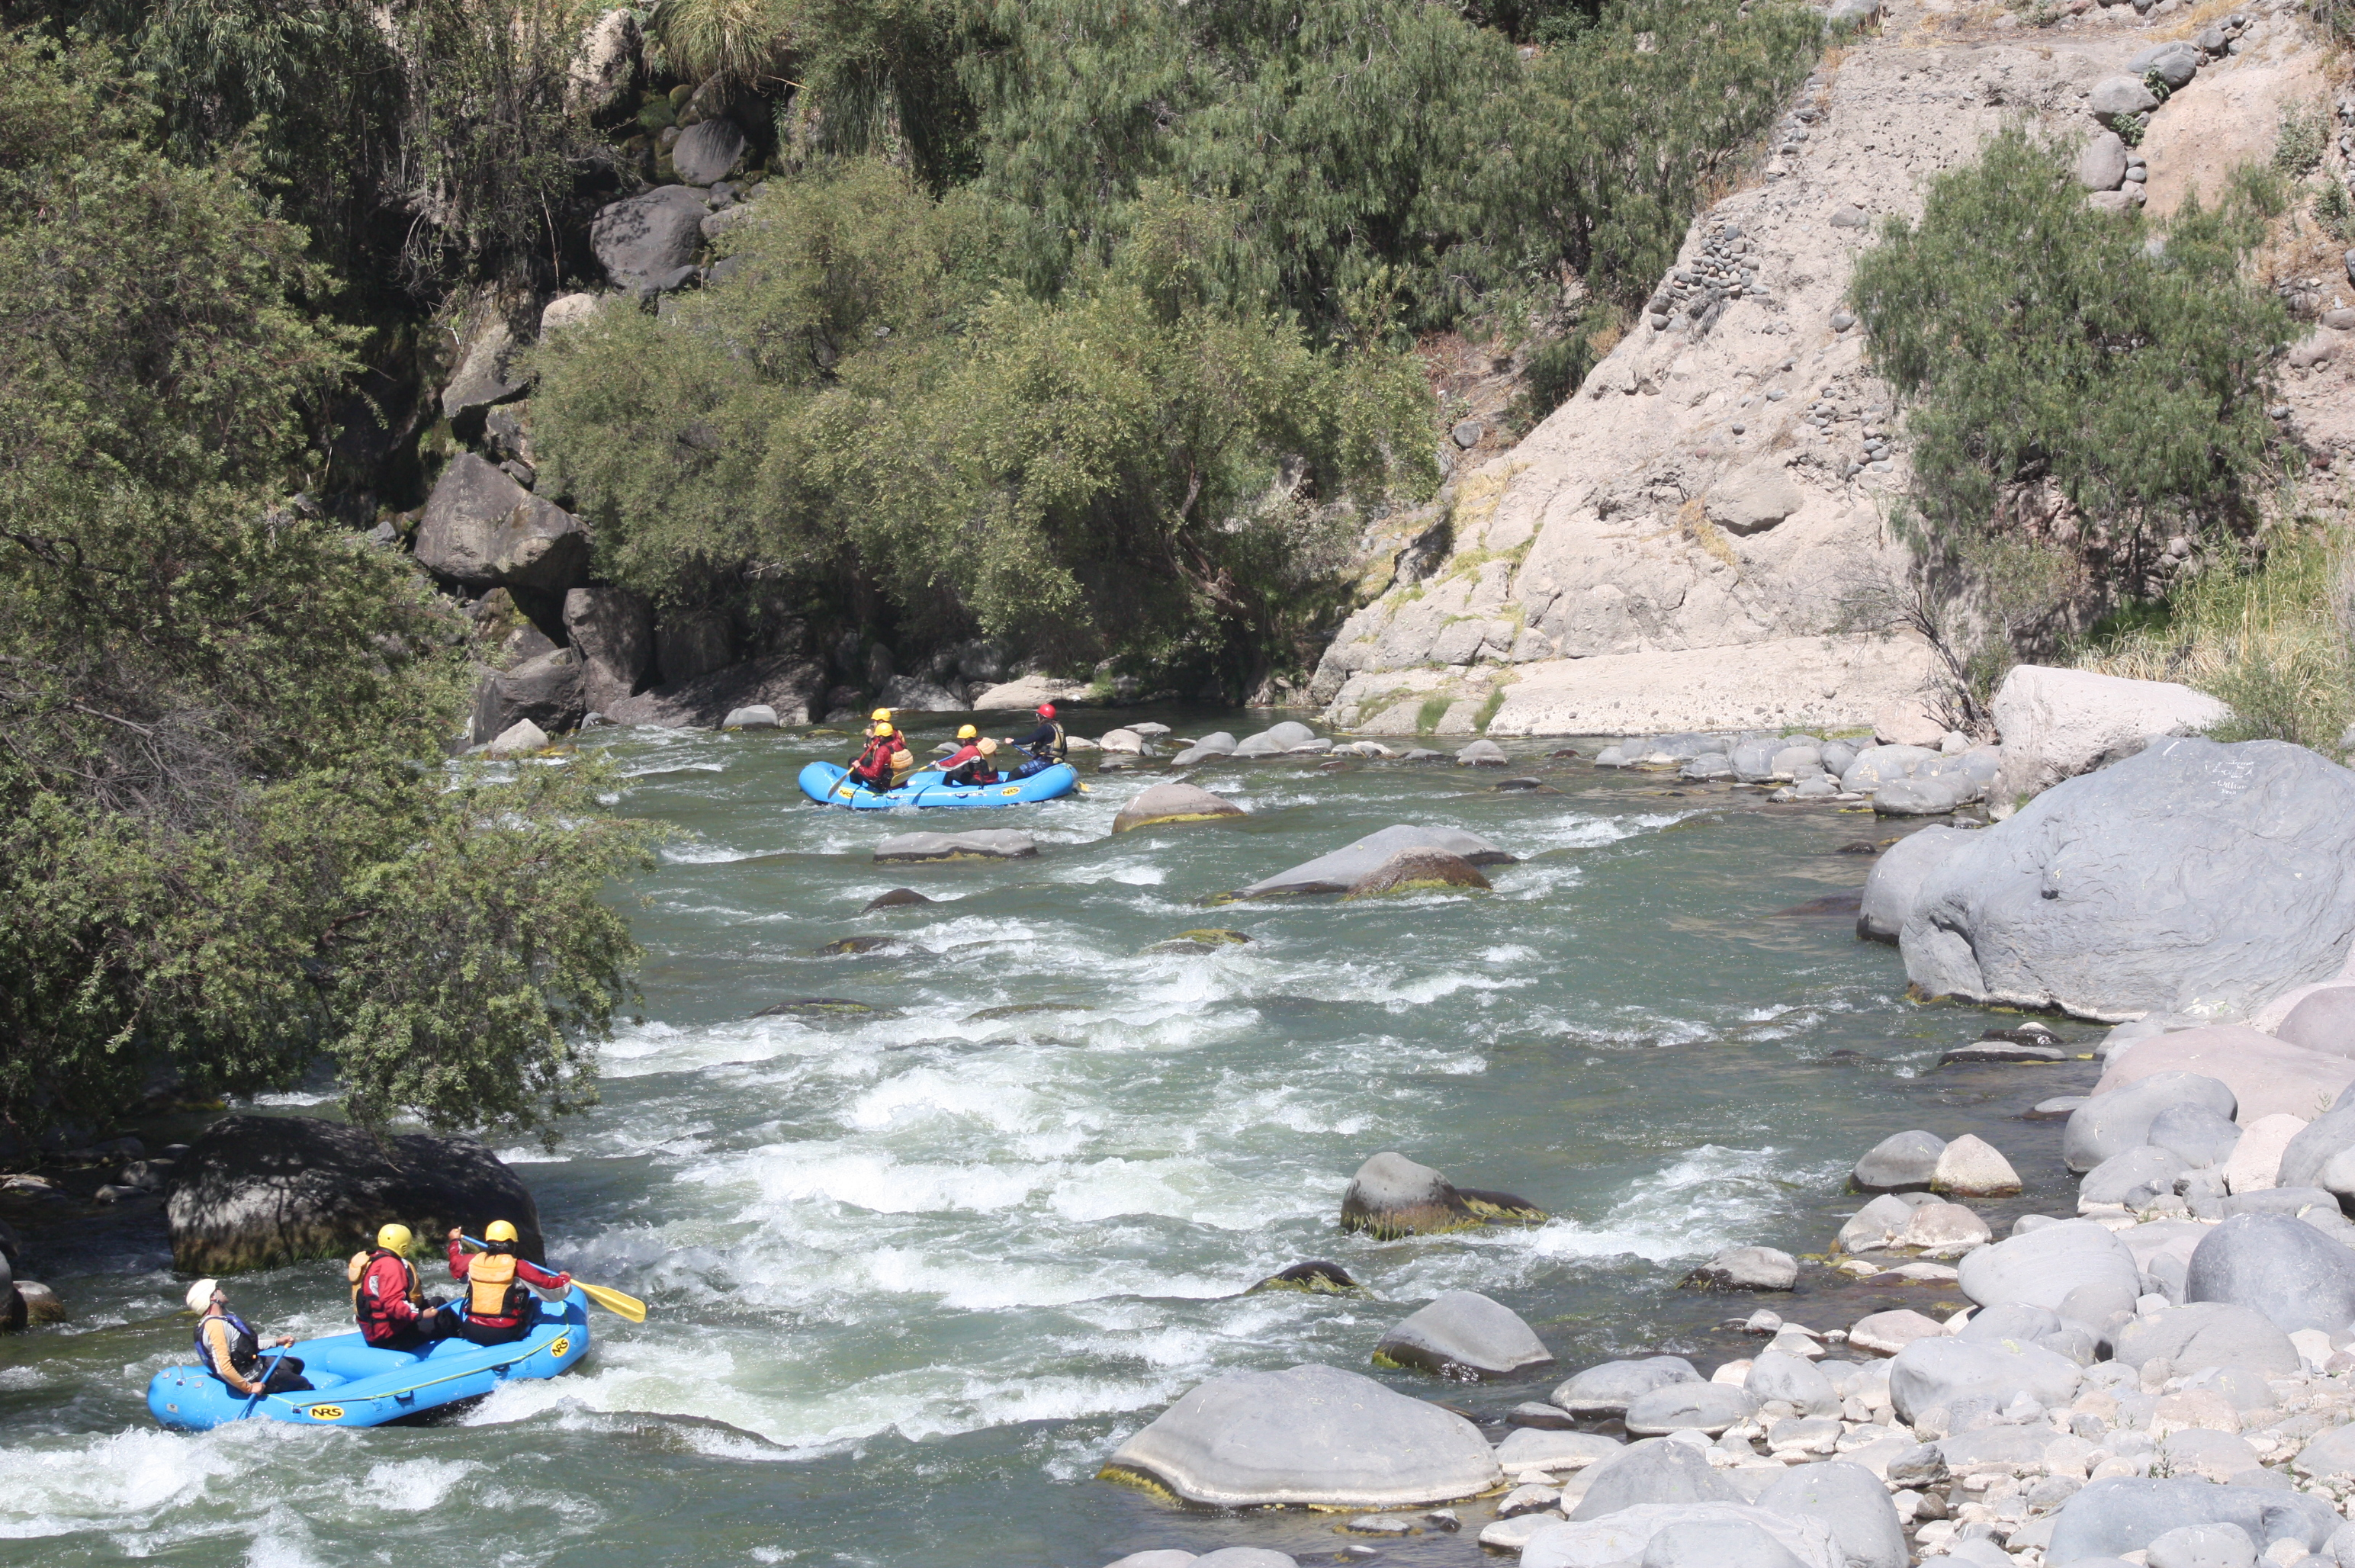 rafting on the rio chili in arequipa peru top things to do in peru best outdoors sports in peru